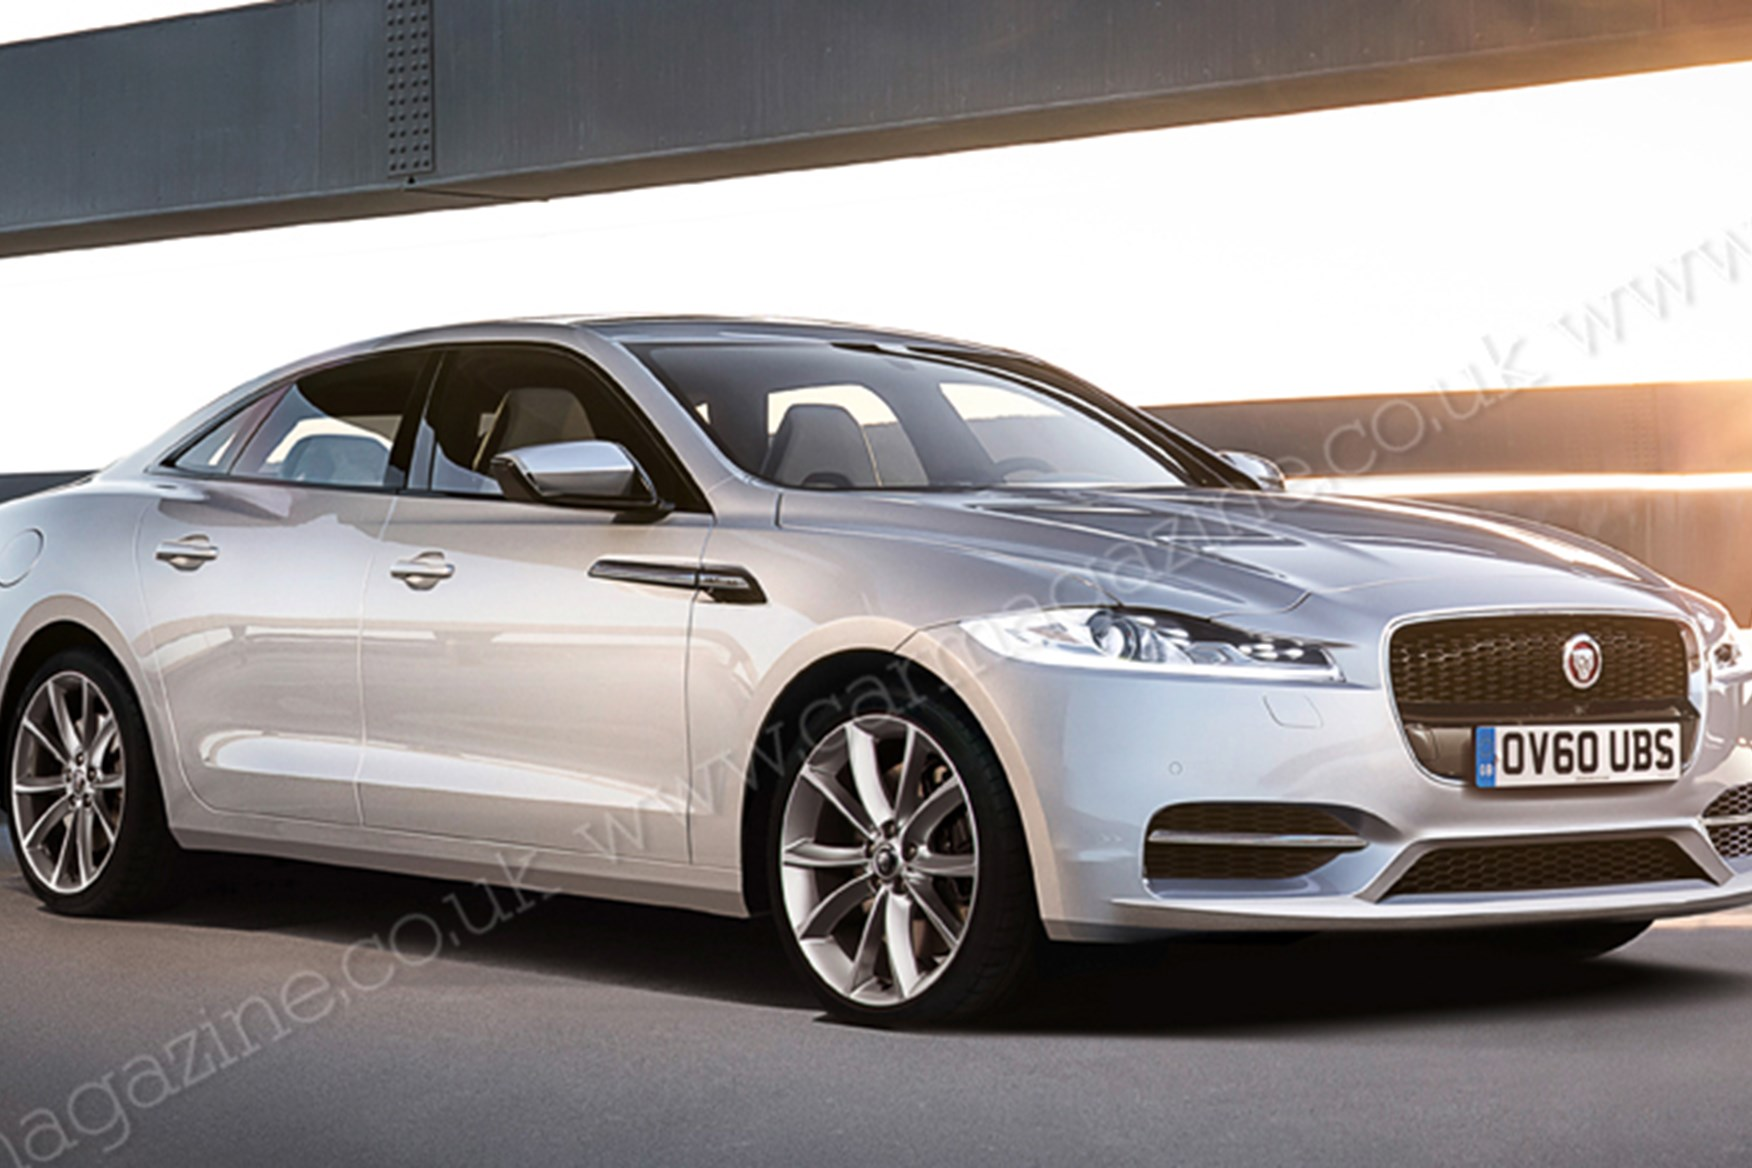 ... Jaguar Expansion The Next XJ Will Have A More Conventional Saloon  Profile Than The Existing Car, ...